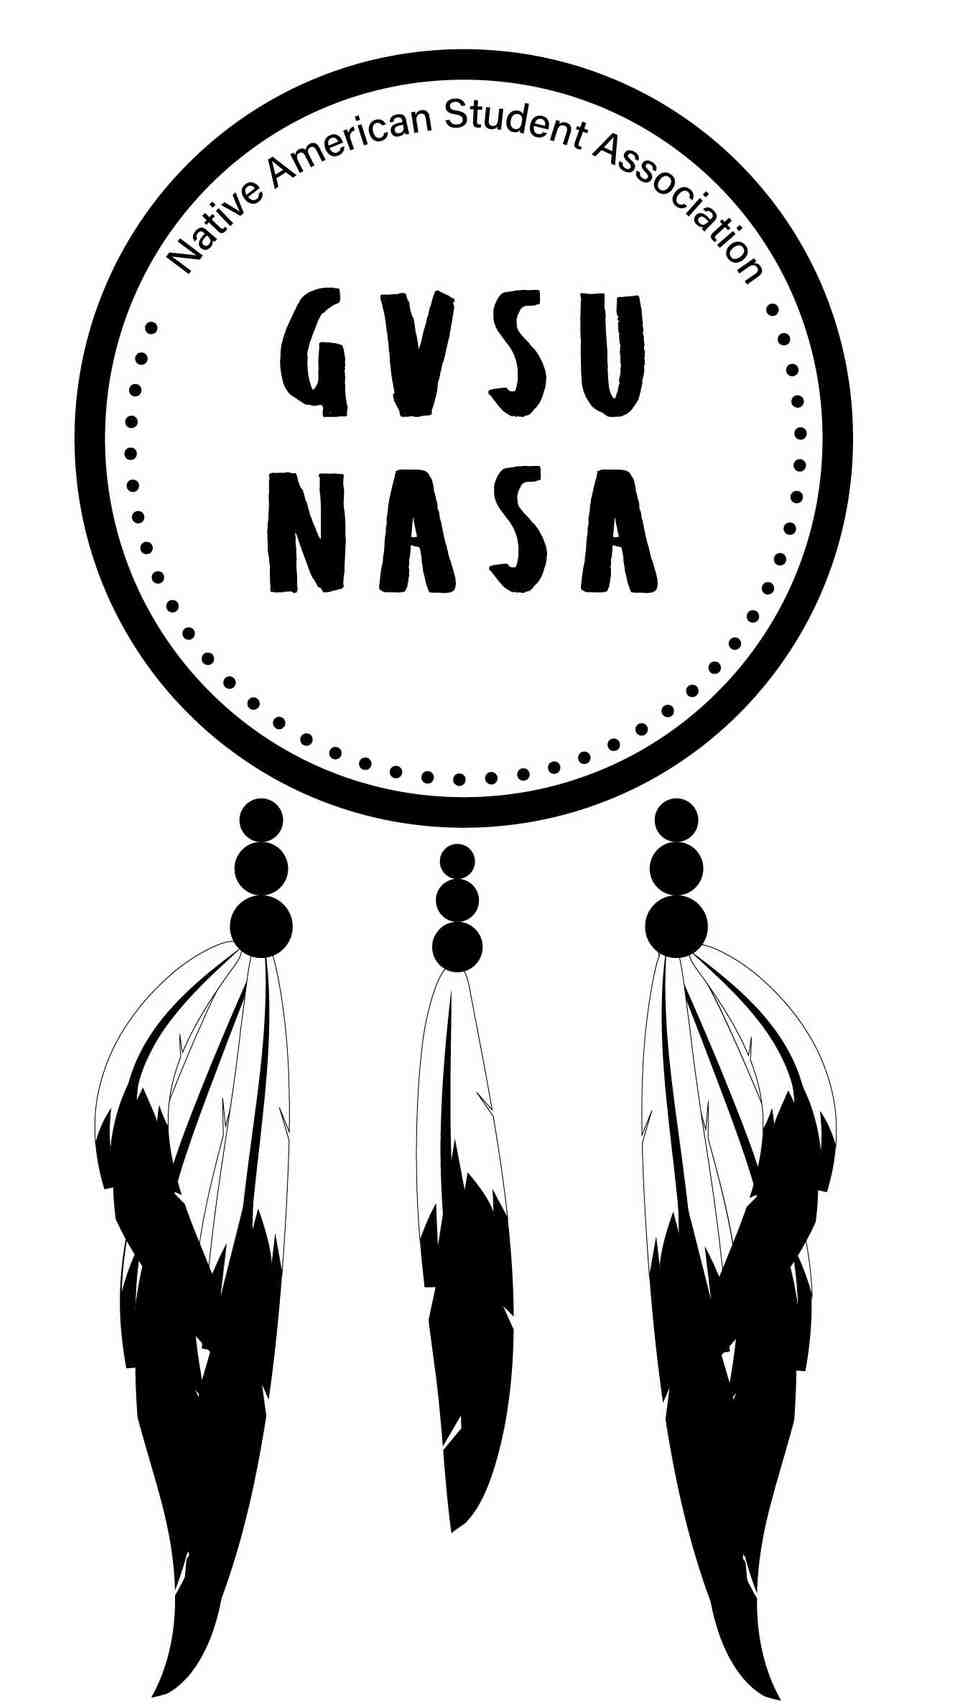 Native American Student Association Logo